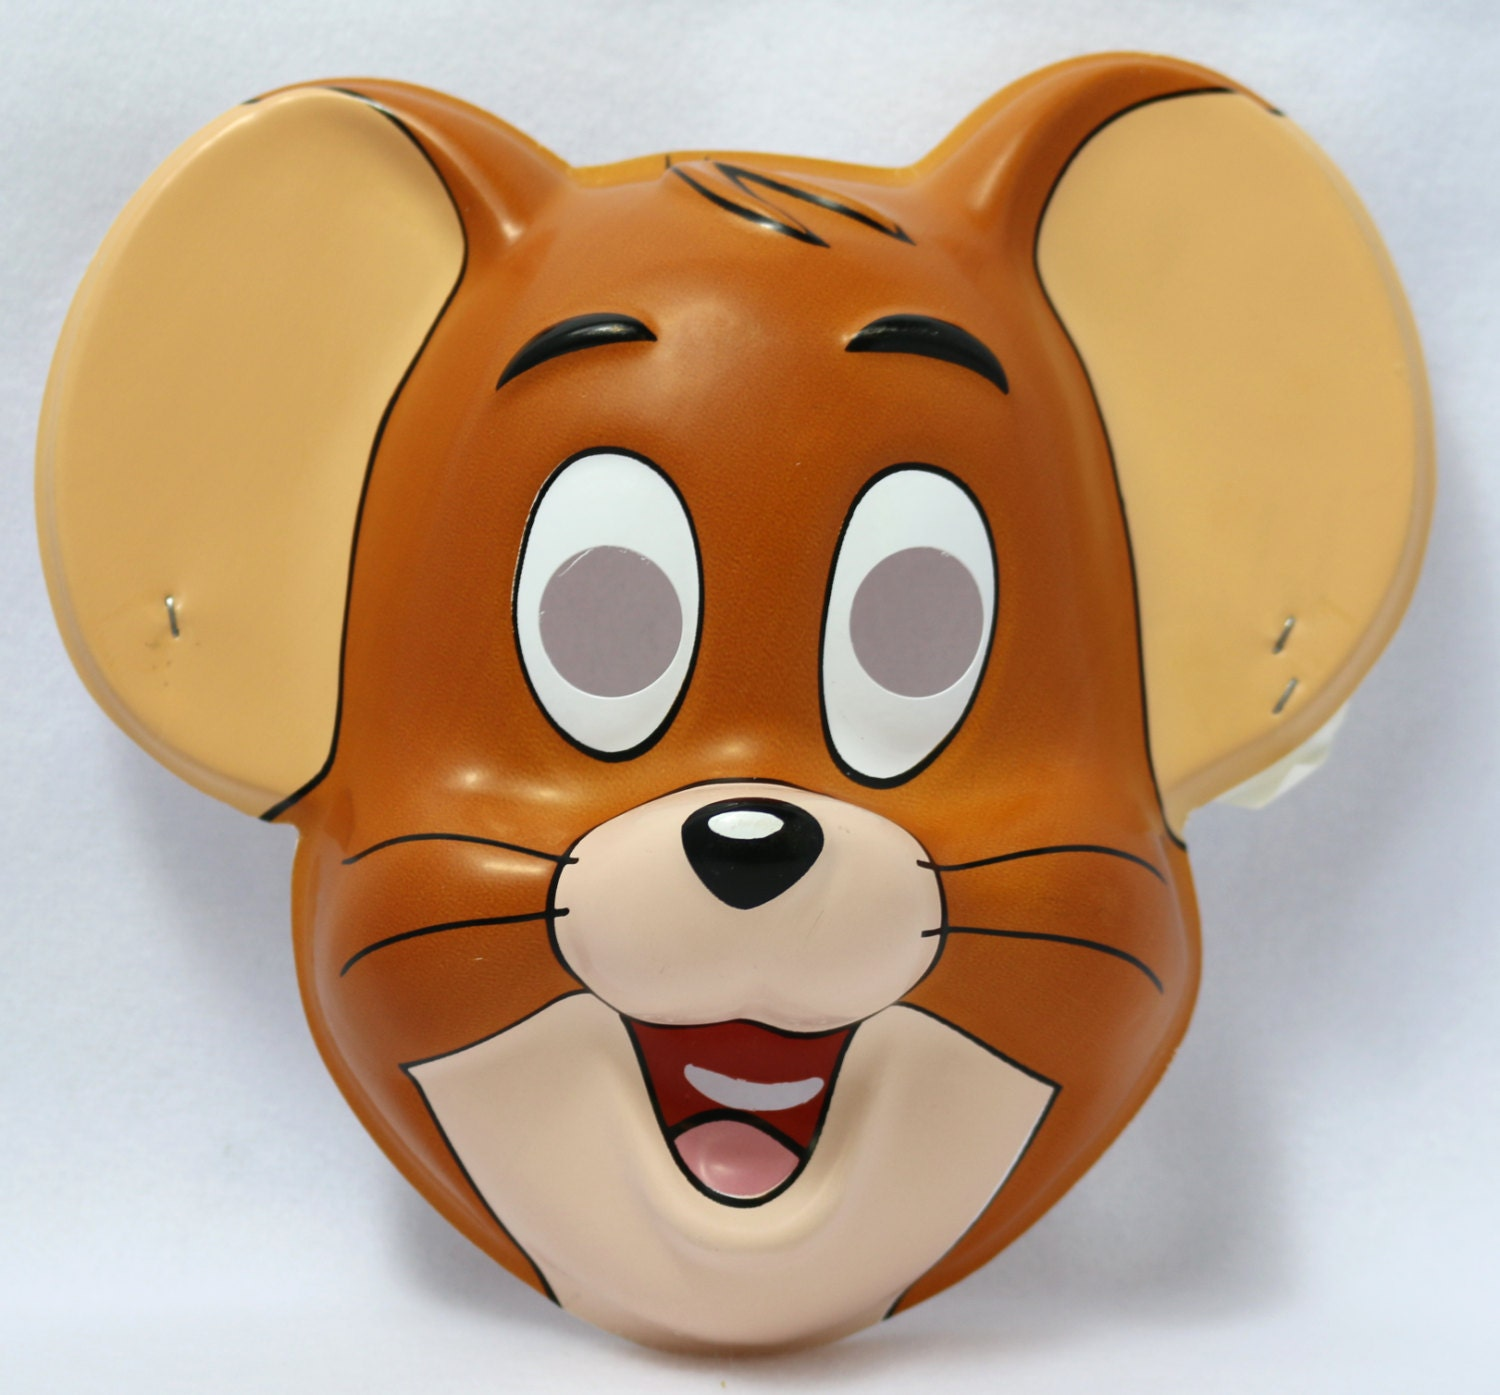 Jerry the mouse face - photo#33